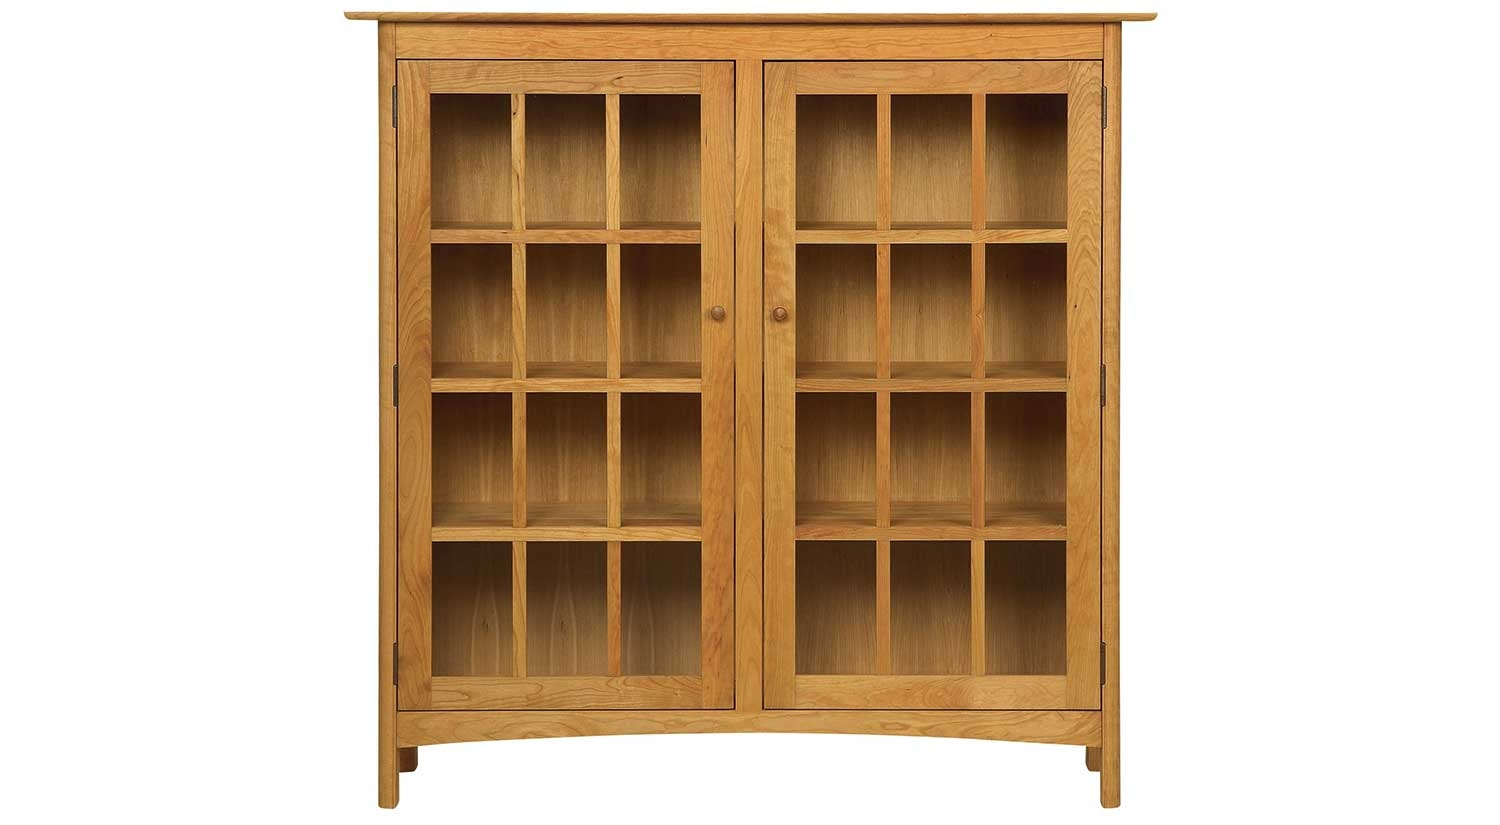 Circle Furniture Solid Wood Bookcase Bookcases Furniture Inside Solid Wood Bookcases (#5 of 15)